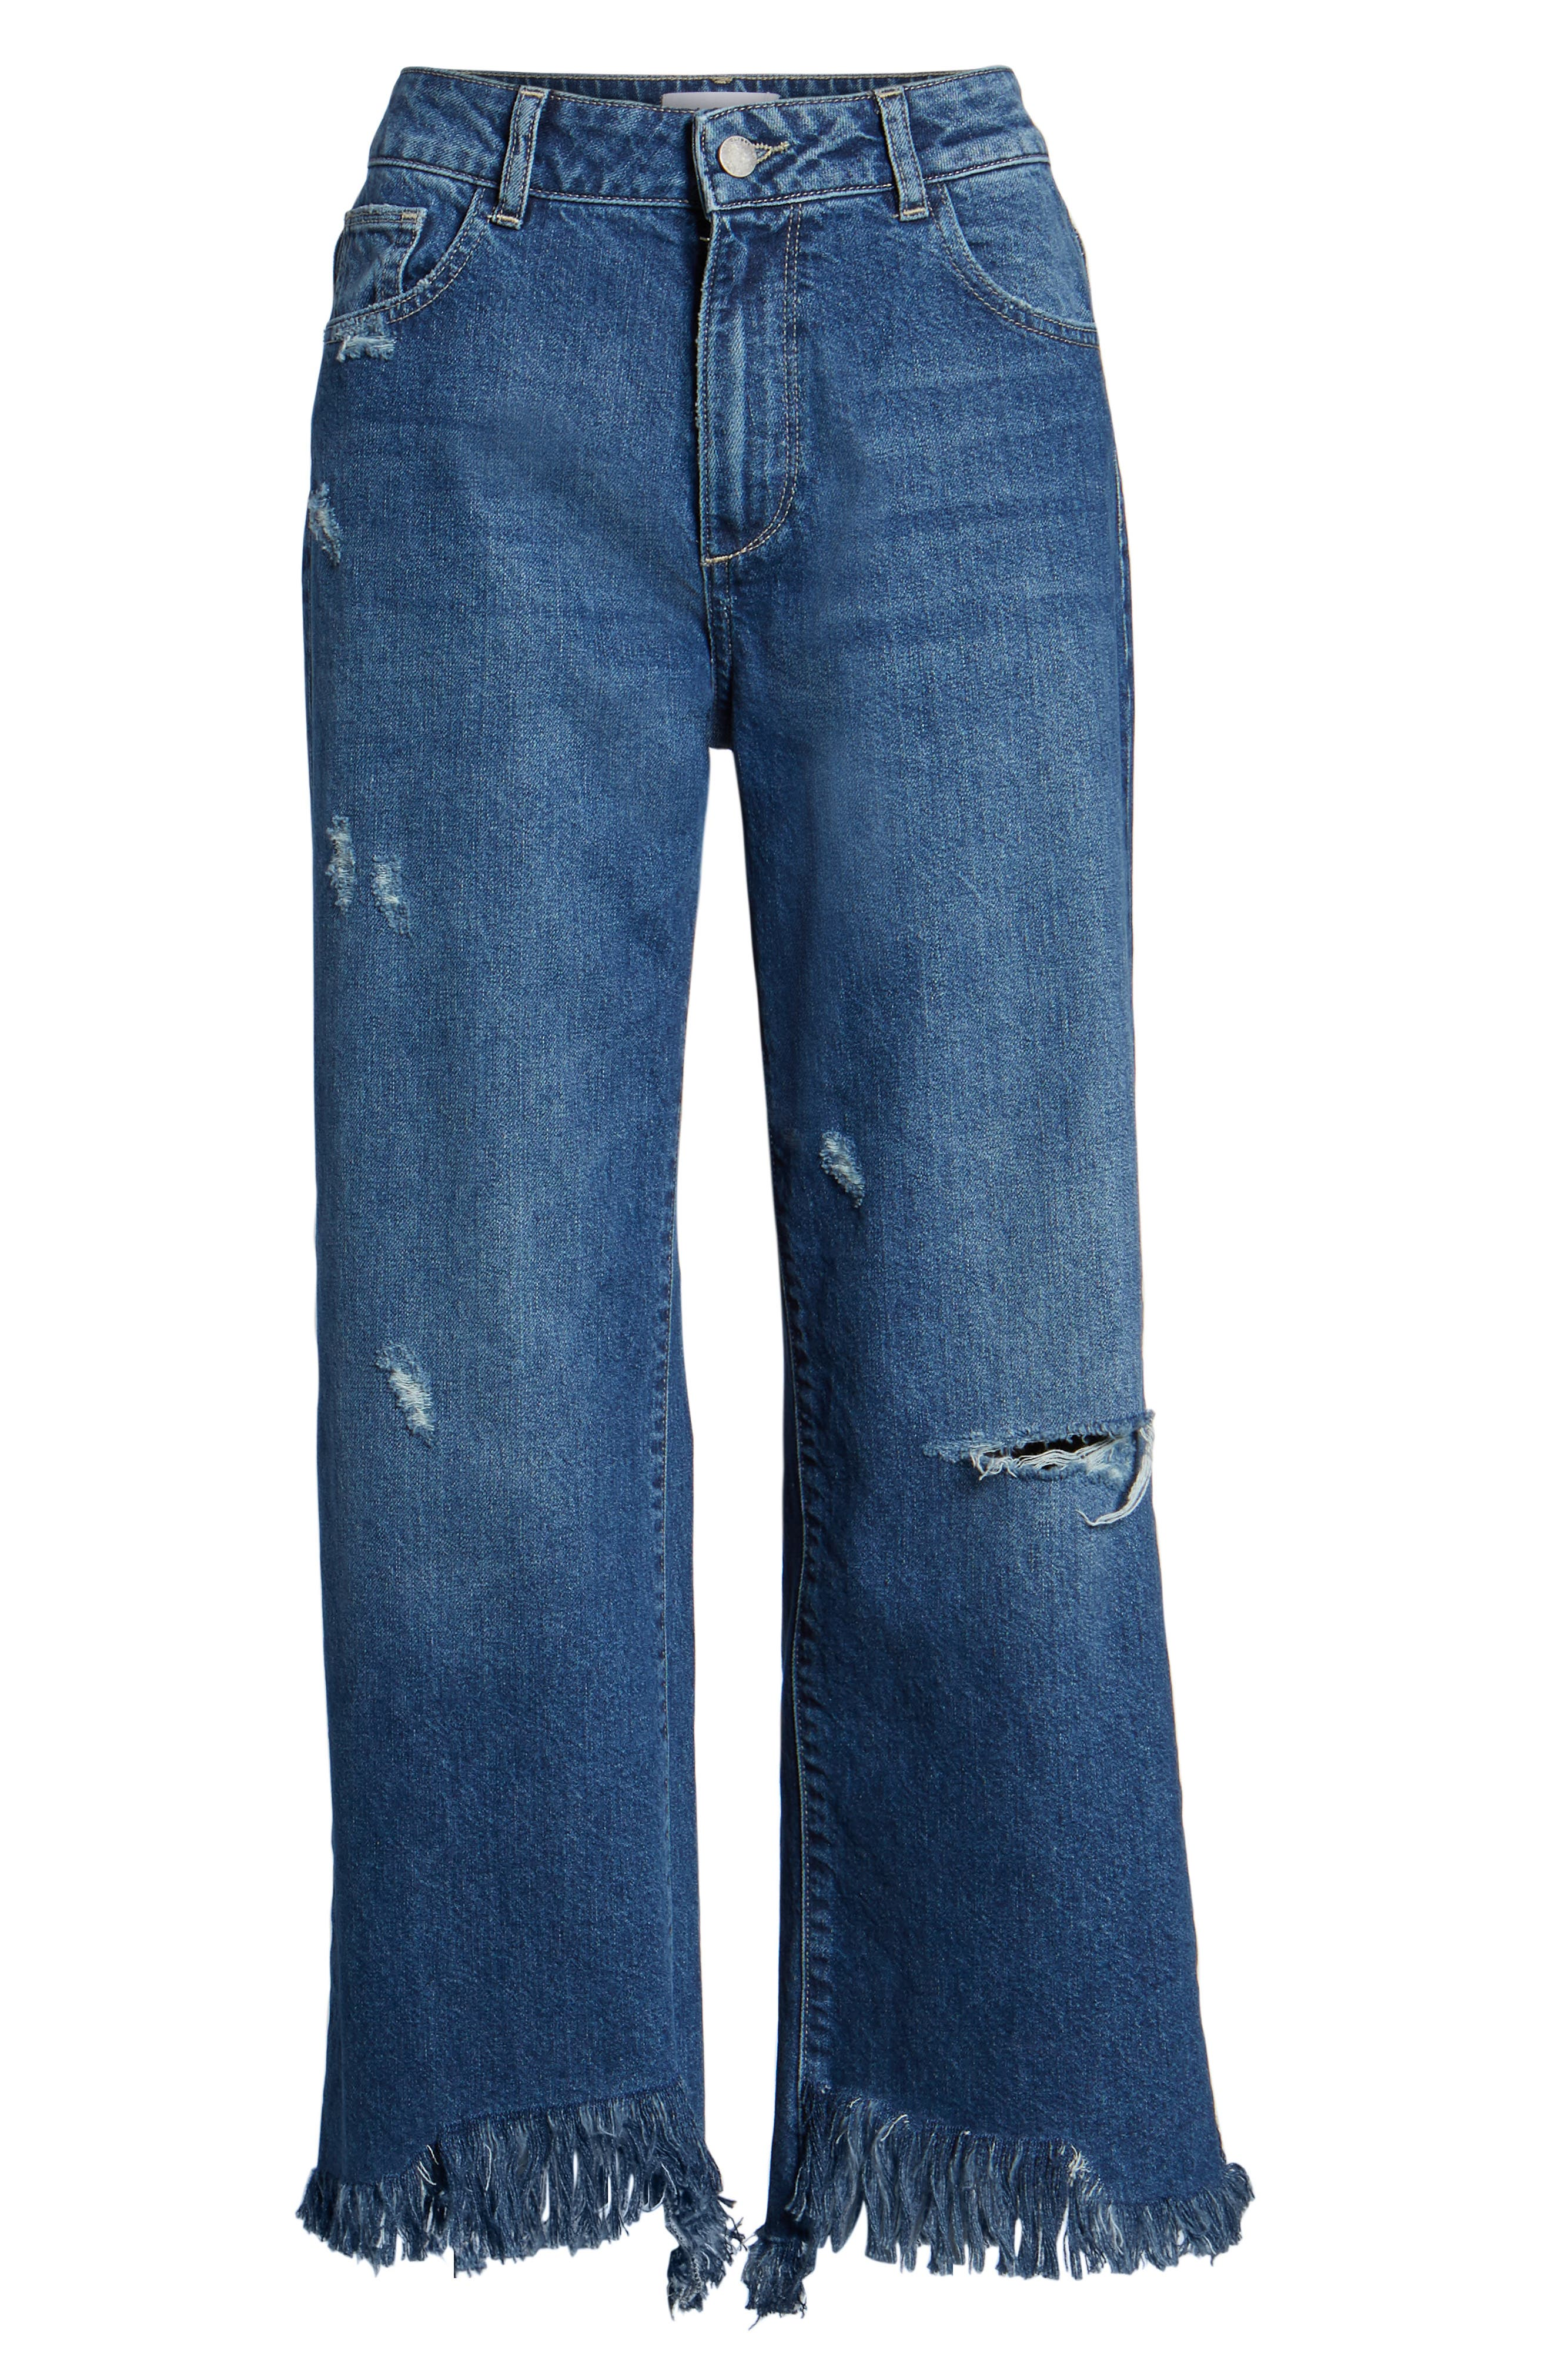 Hepburn High Waist Wide Leg Jeans,                             Alternate thumbnail 7, color,                             Goldfield